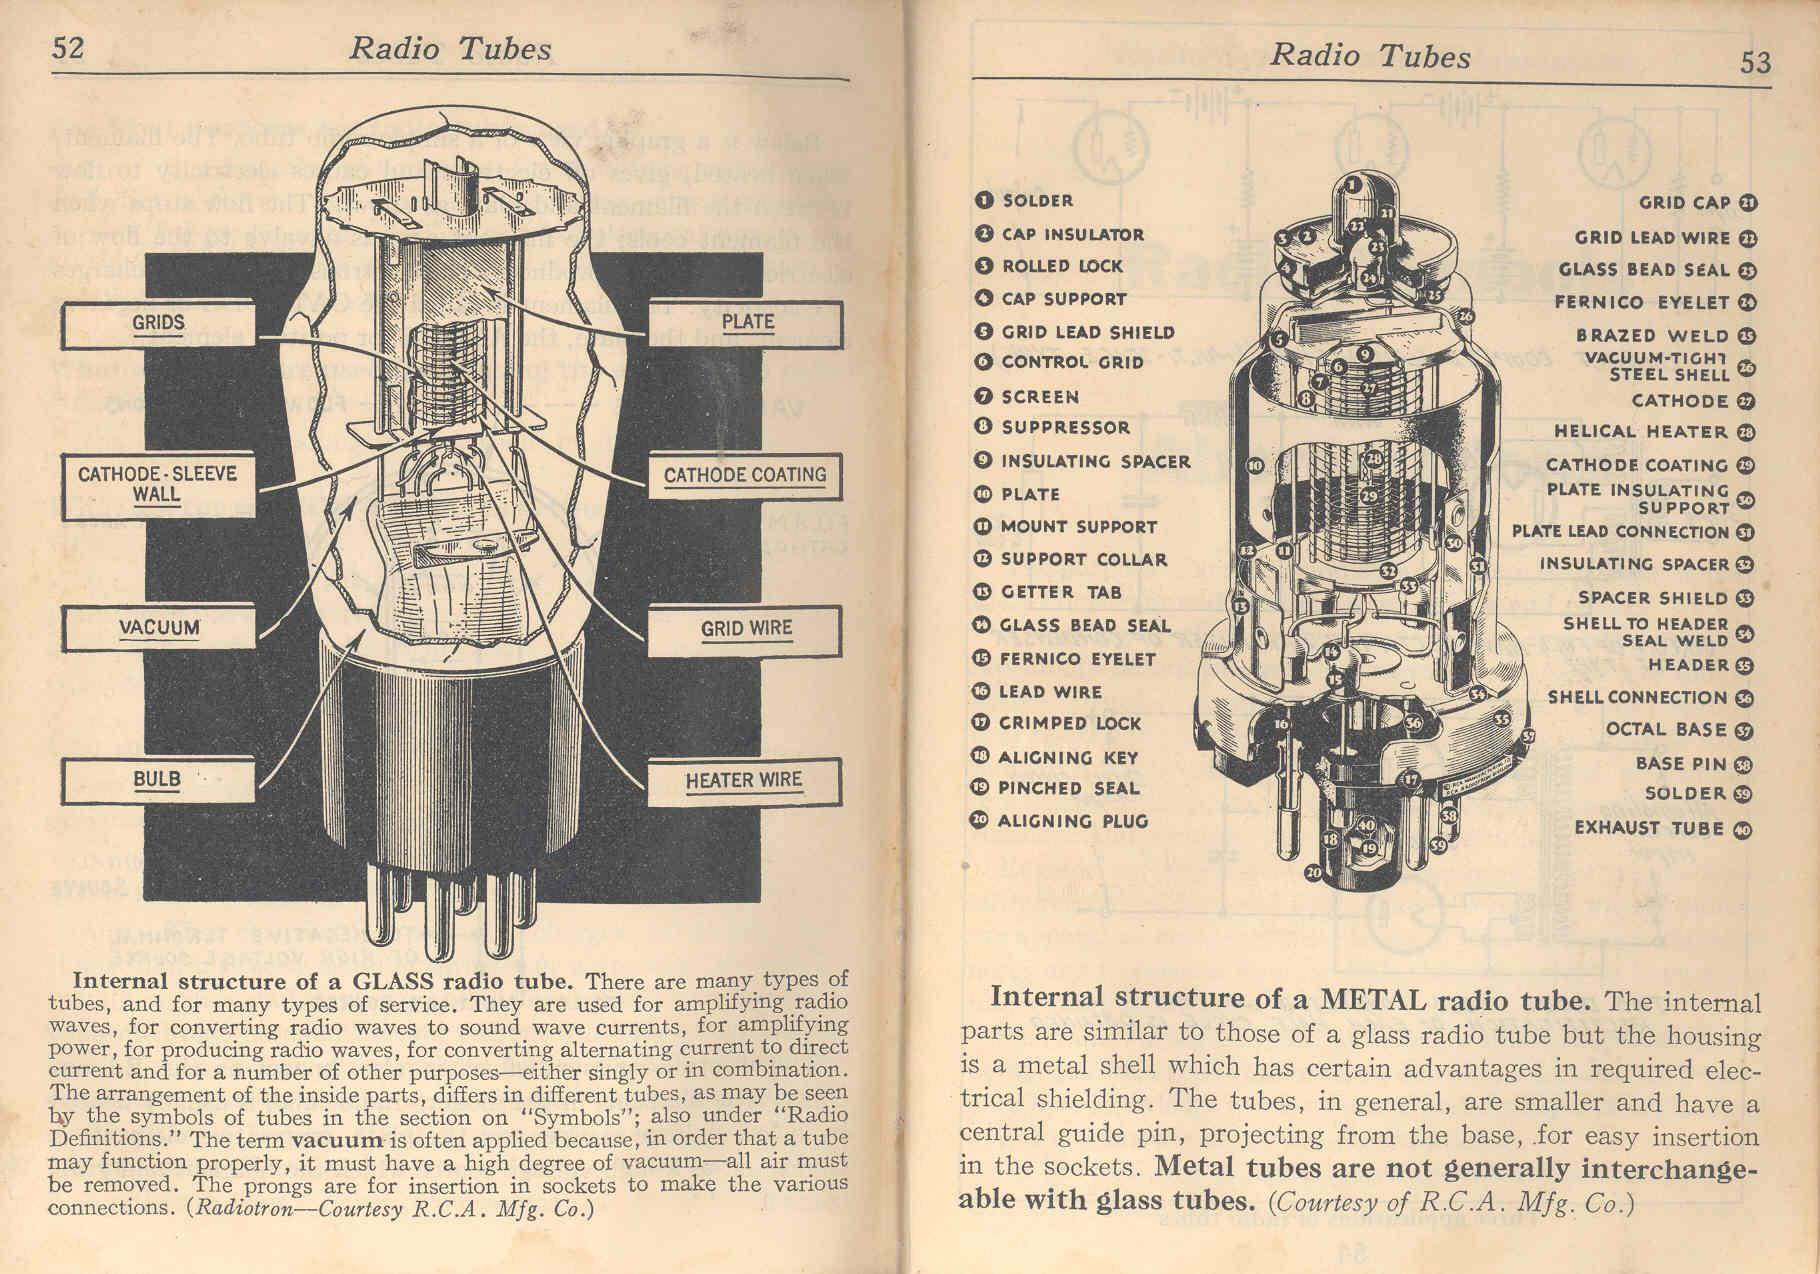 Audels handy book of practical electricity, ... on